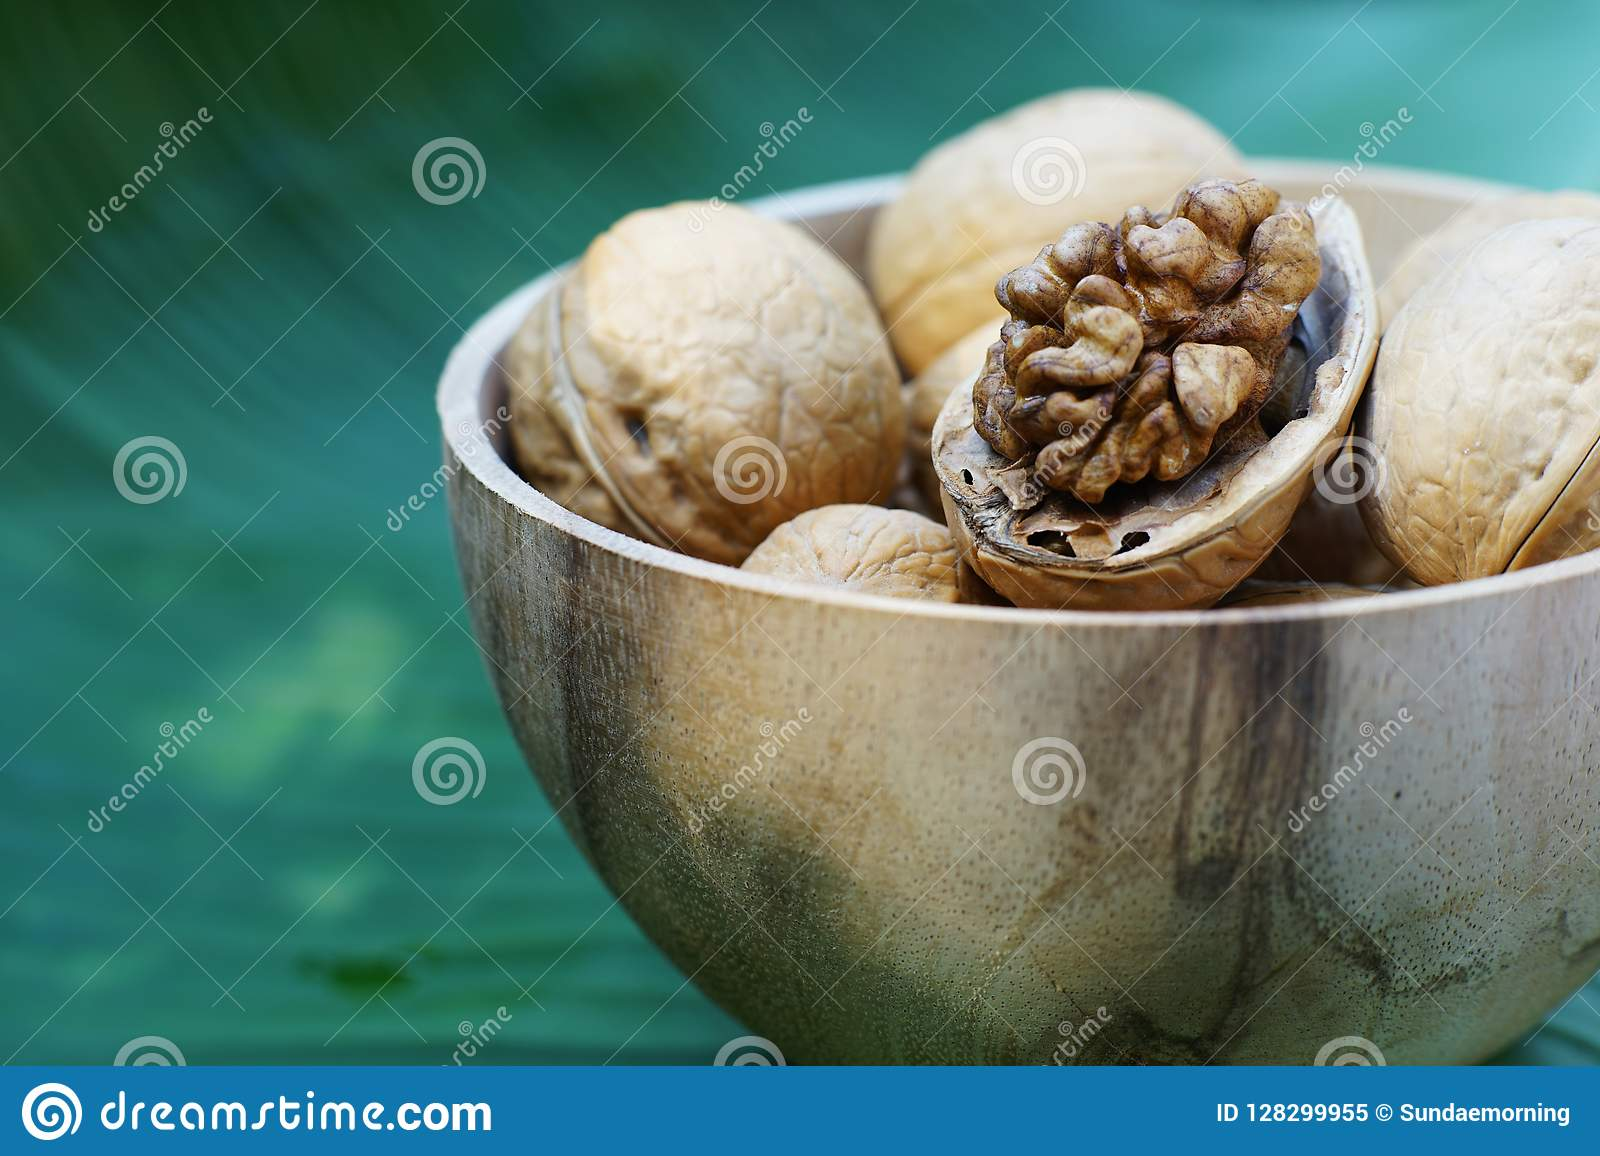 Group of walnut in wooden bowl on wood background, copy space, super food concept